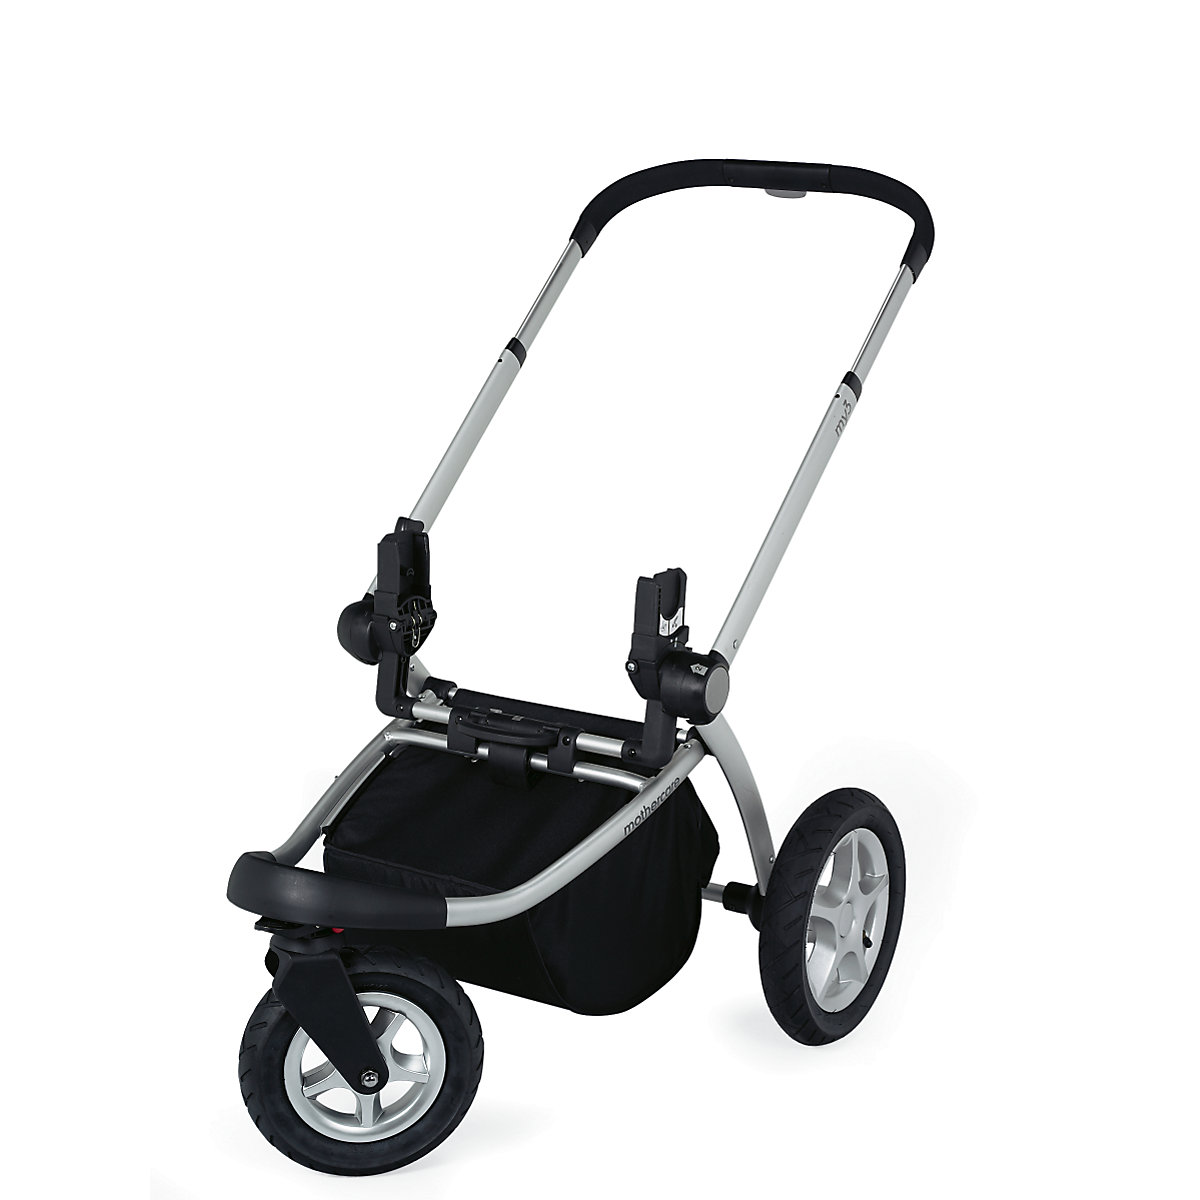 Mothercare MyChoice Pram and Pushchair Chassis - 3-Wheeler